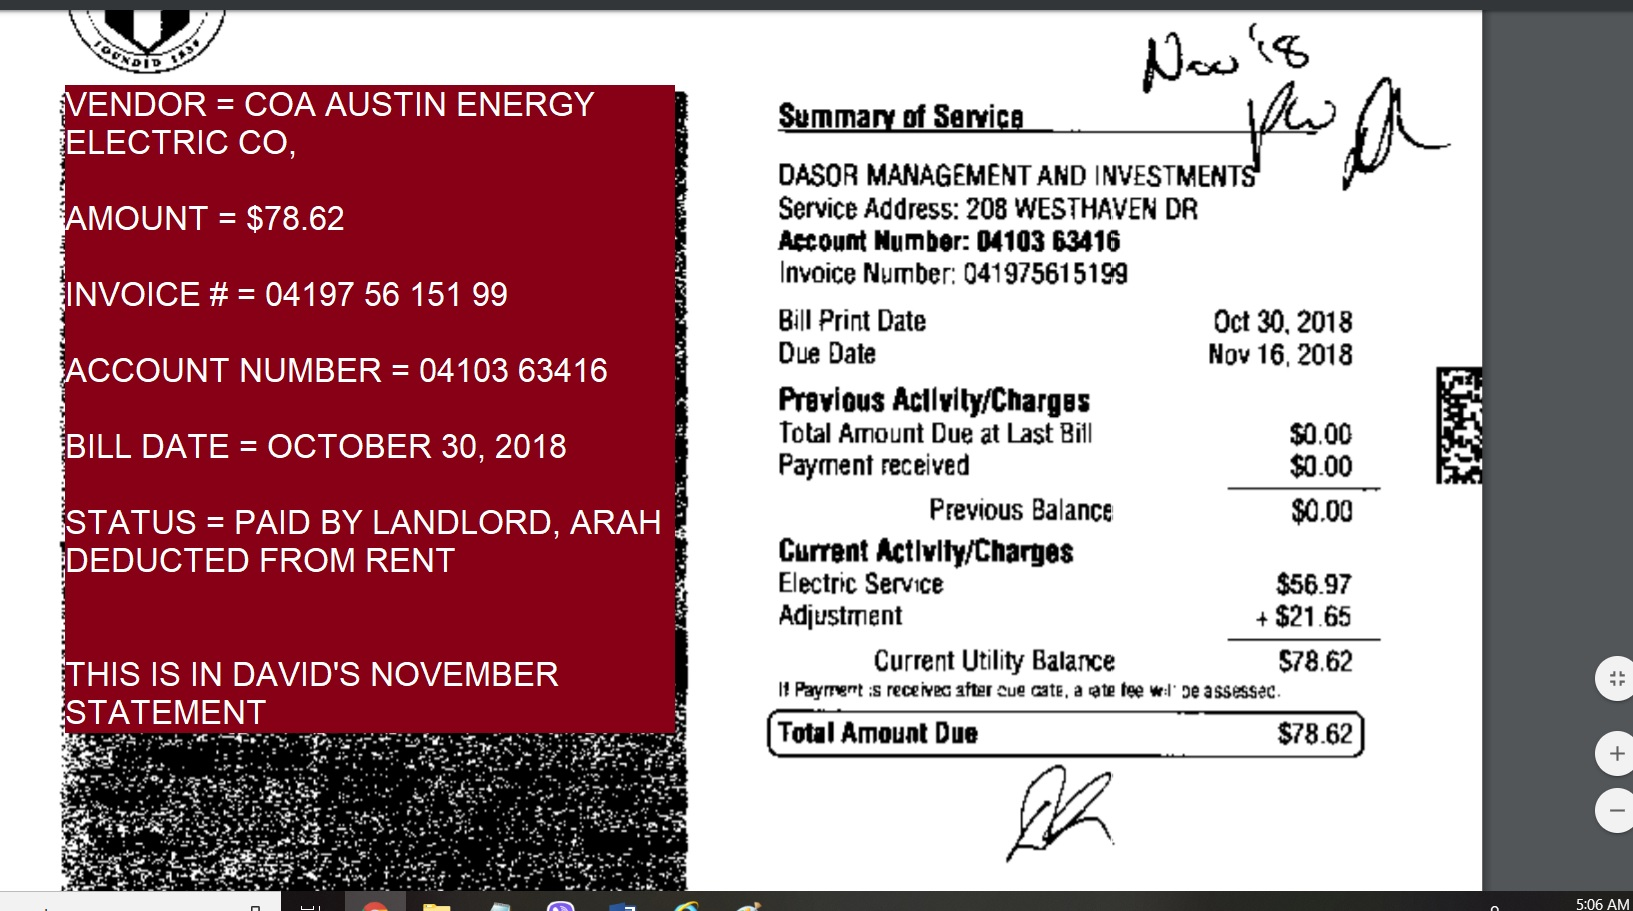 VENDOR = COA AUSTIN ENERGY ELECTRIC CO, $78.62 OCTOBER 30, 2018 BILL - FOR ELECTRICITY BY COA STATUS = PAID